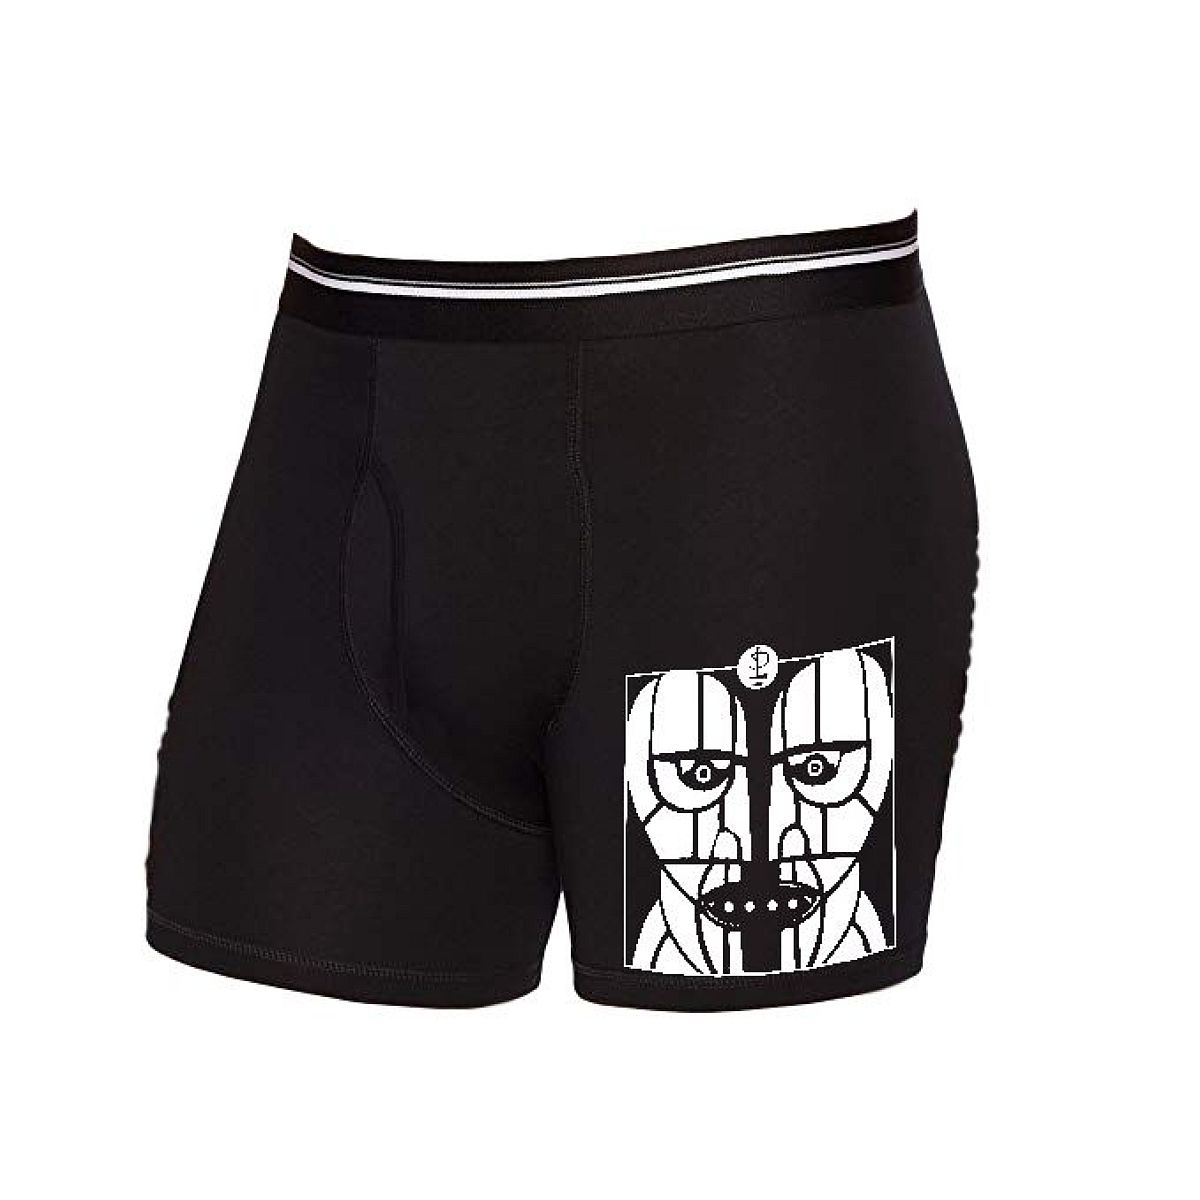 Whiteheads Boxer Briefs